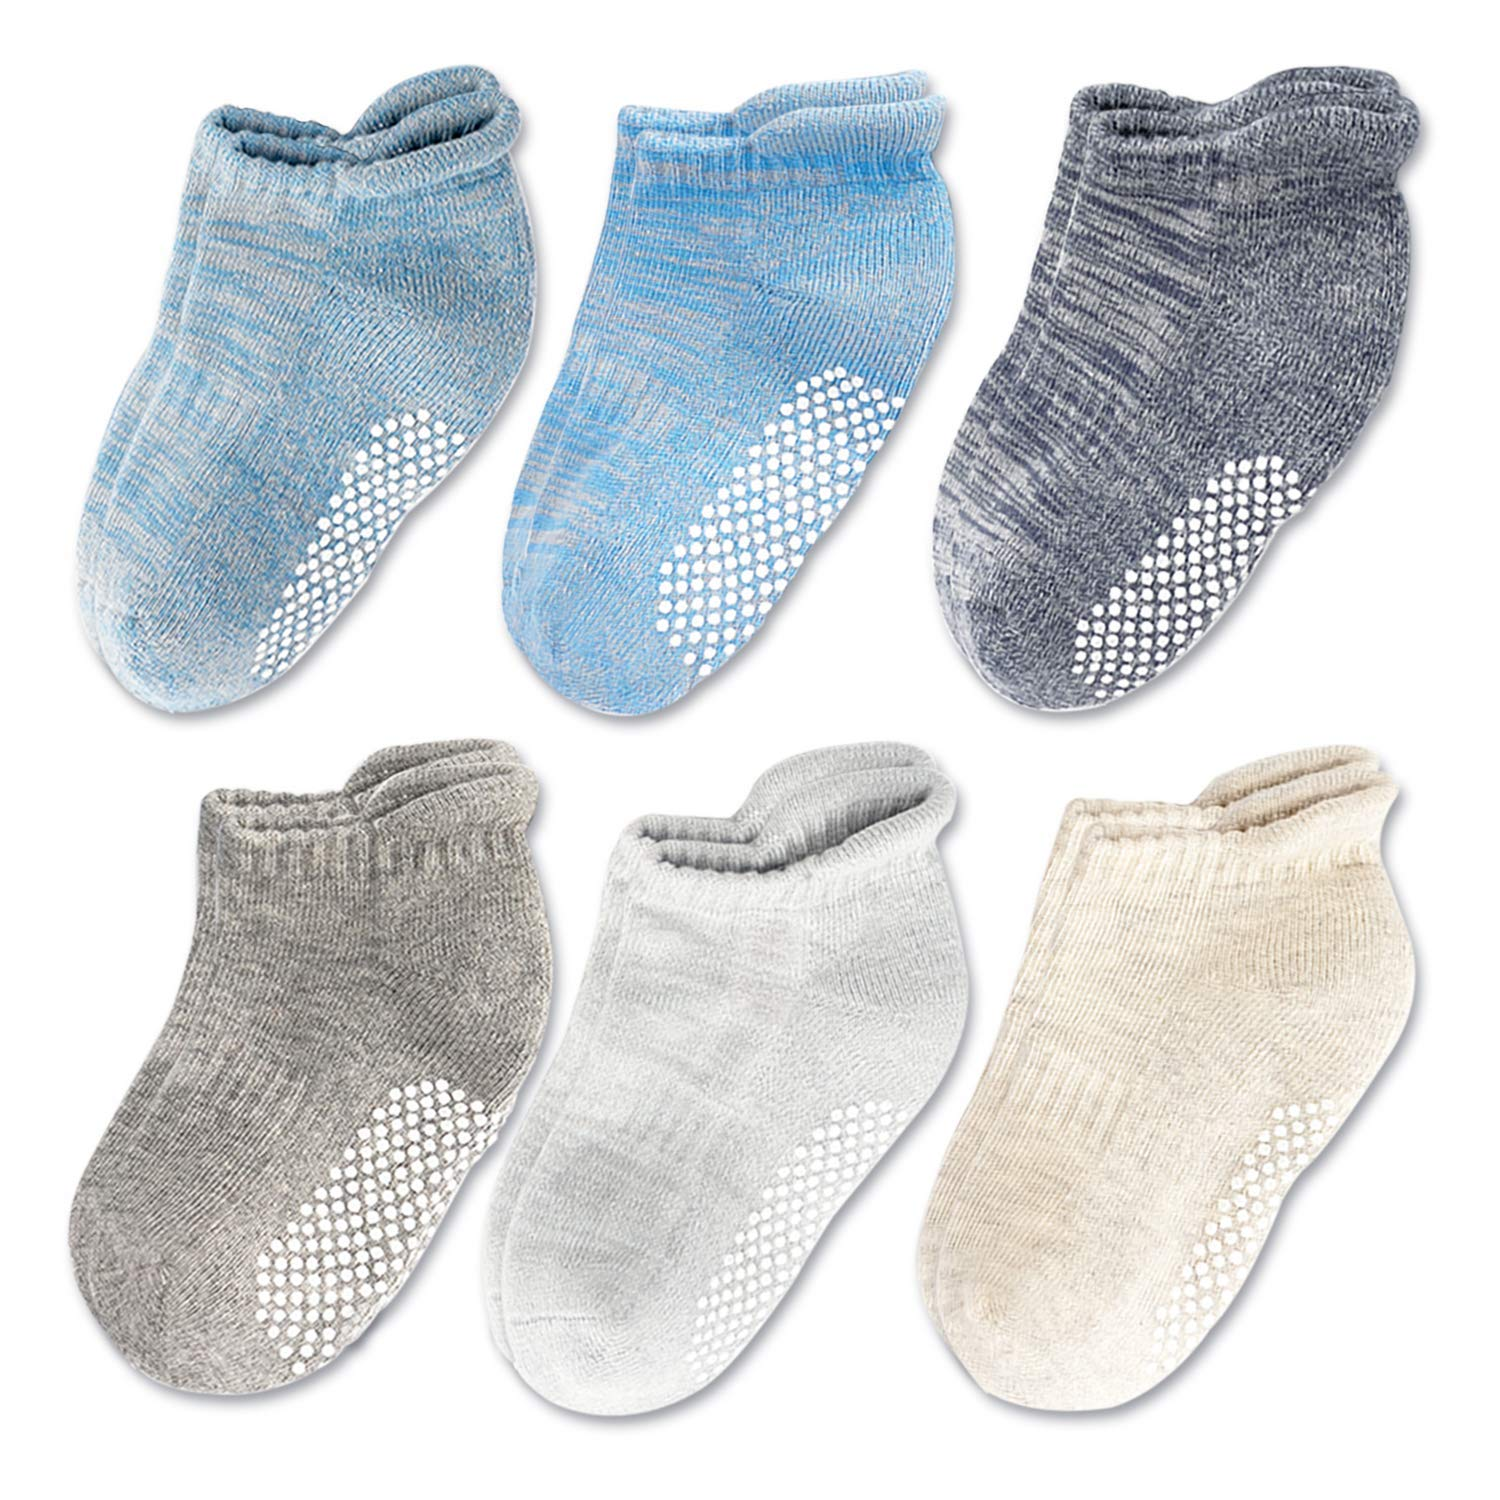 Baby Boy Girl Toddler Kids Low Cut Ankle Socks With Non Slip//Anti Skid Grips,1-2T,2-4T, 6 Pairs